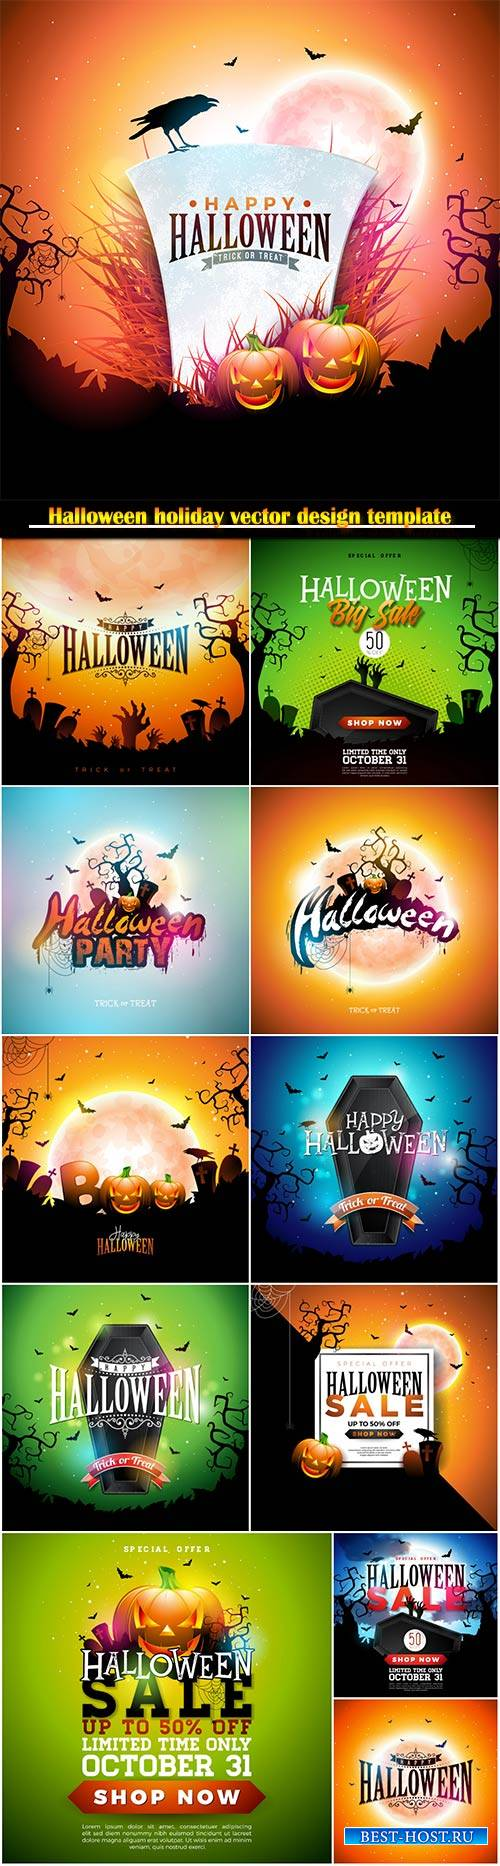 Halloween holiday vector design template # 2